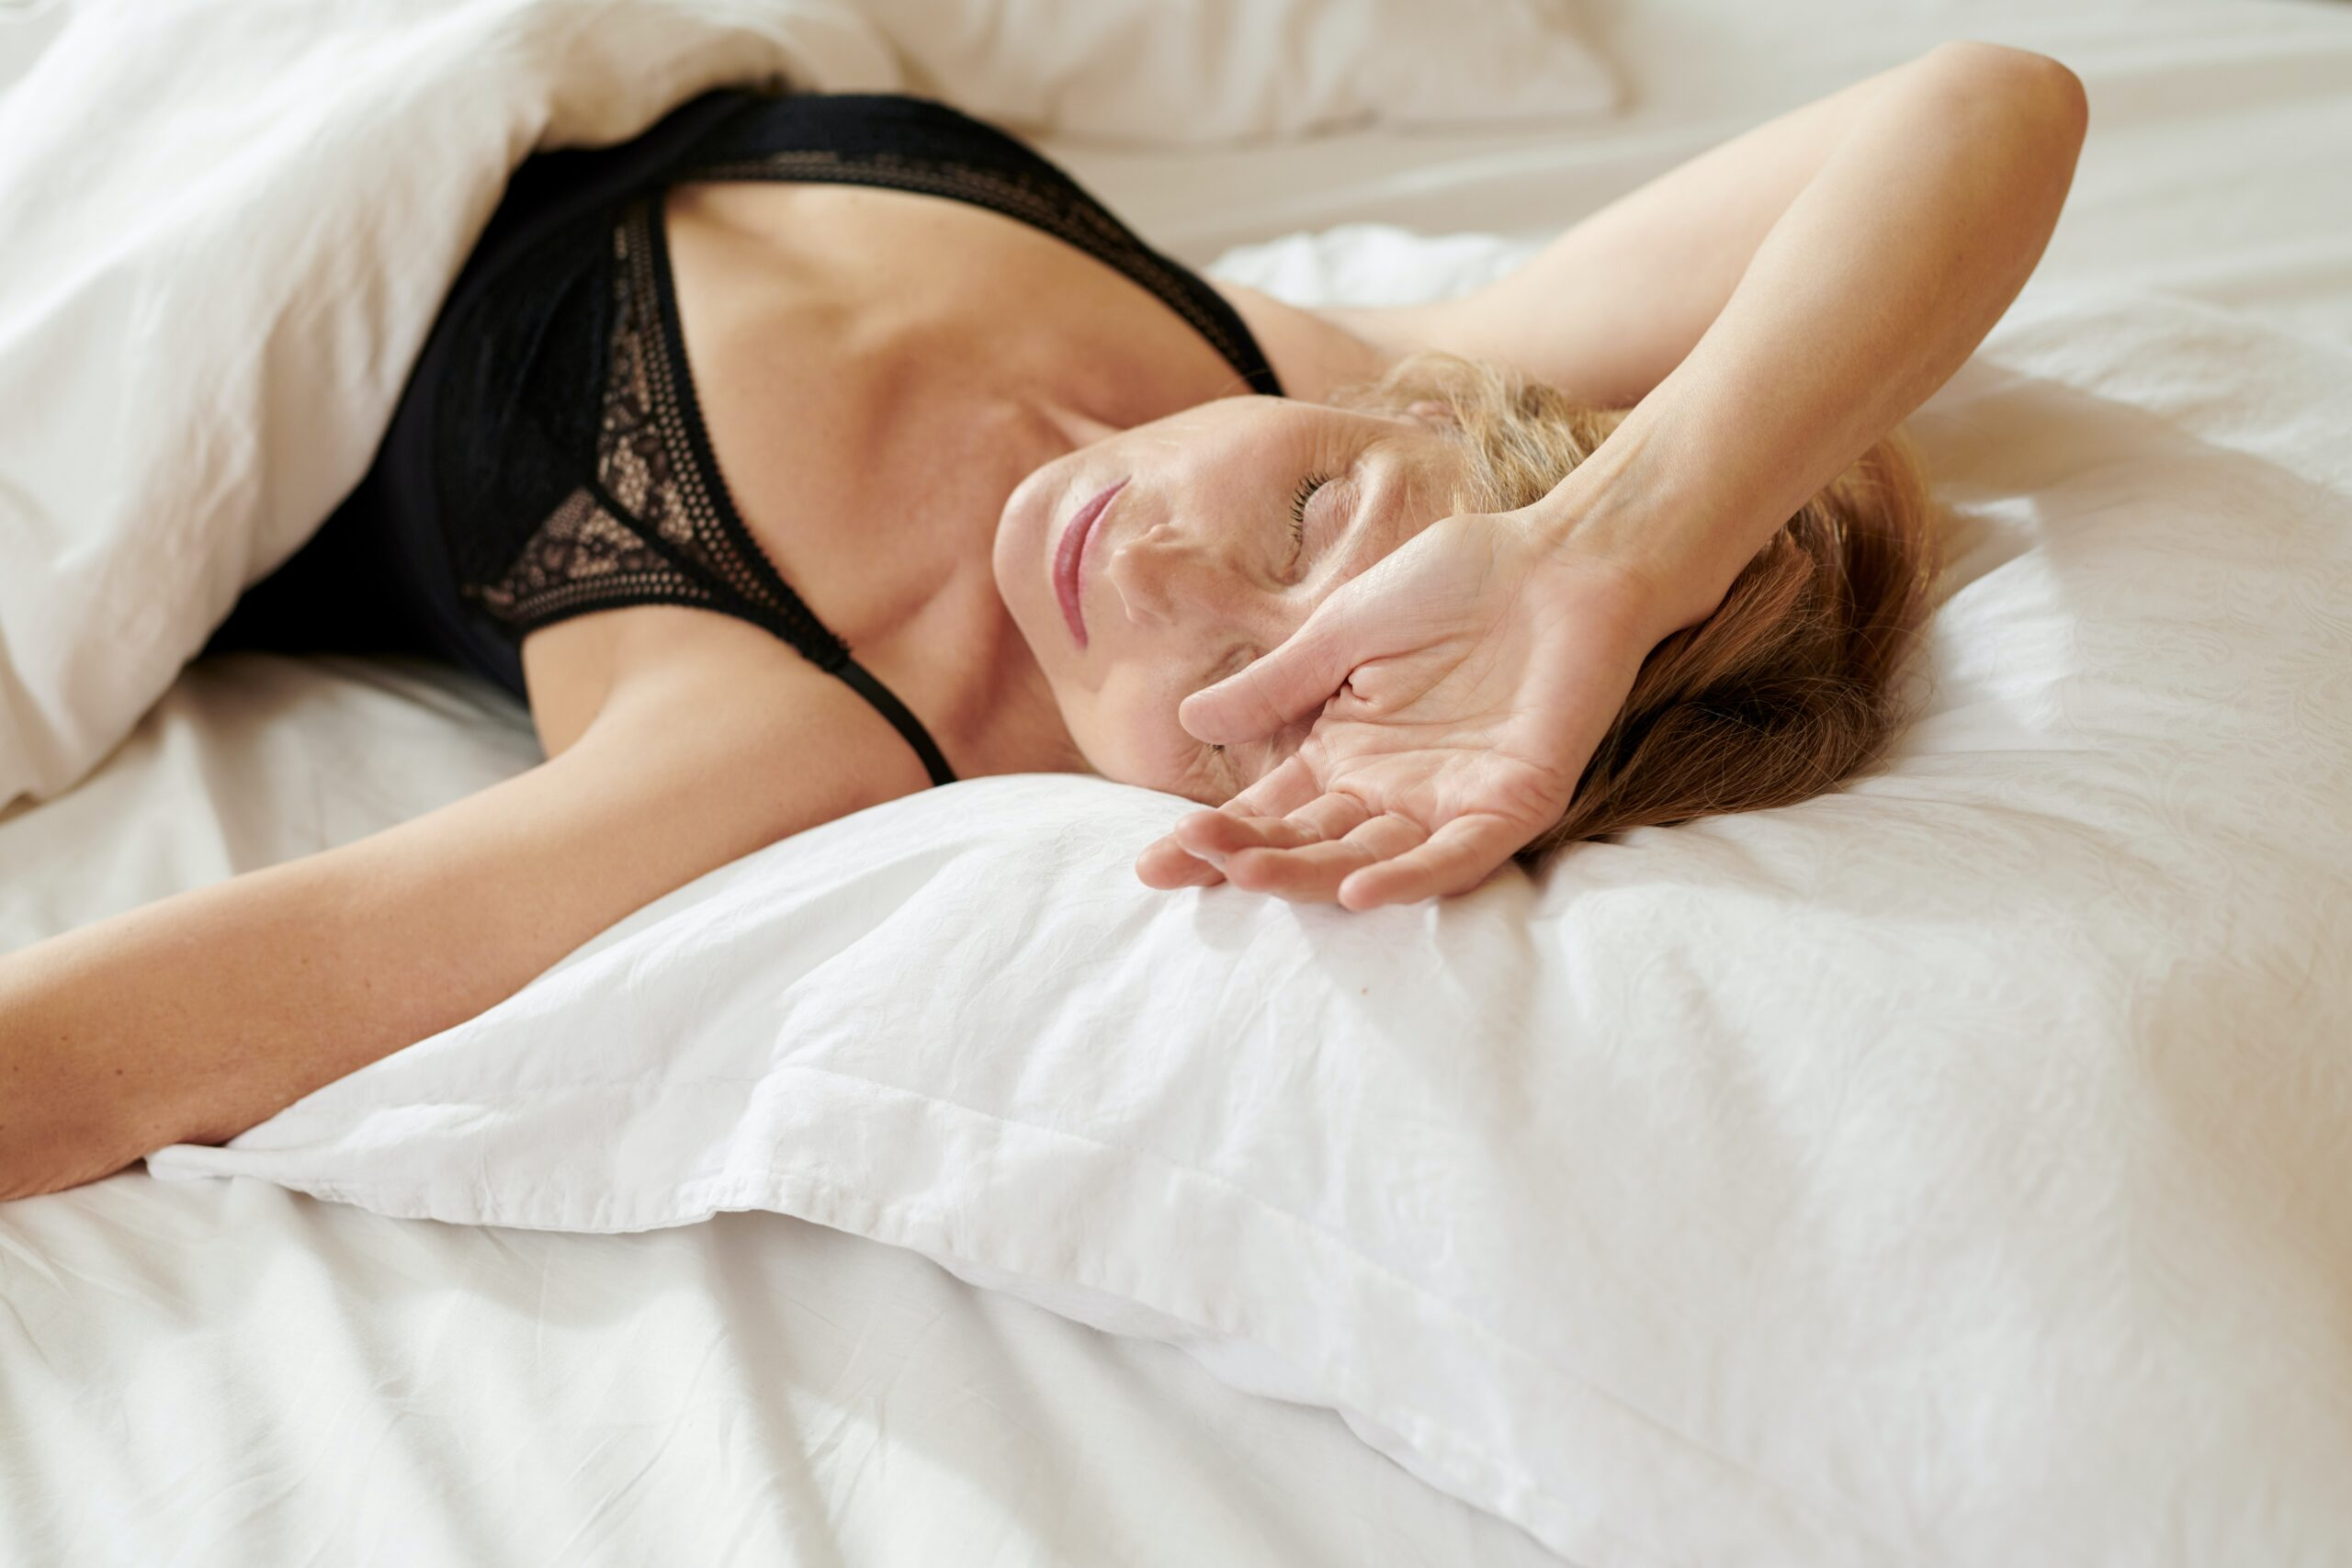 woman in bed with arm thrown over her face